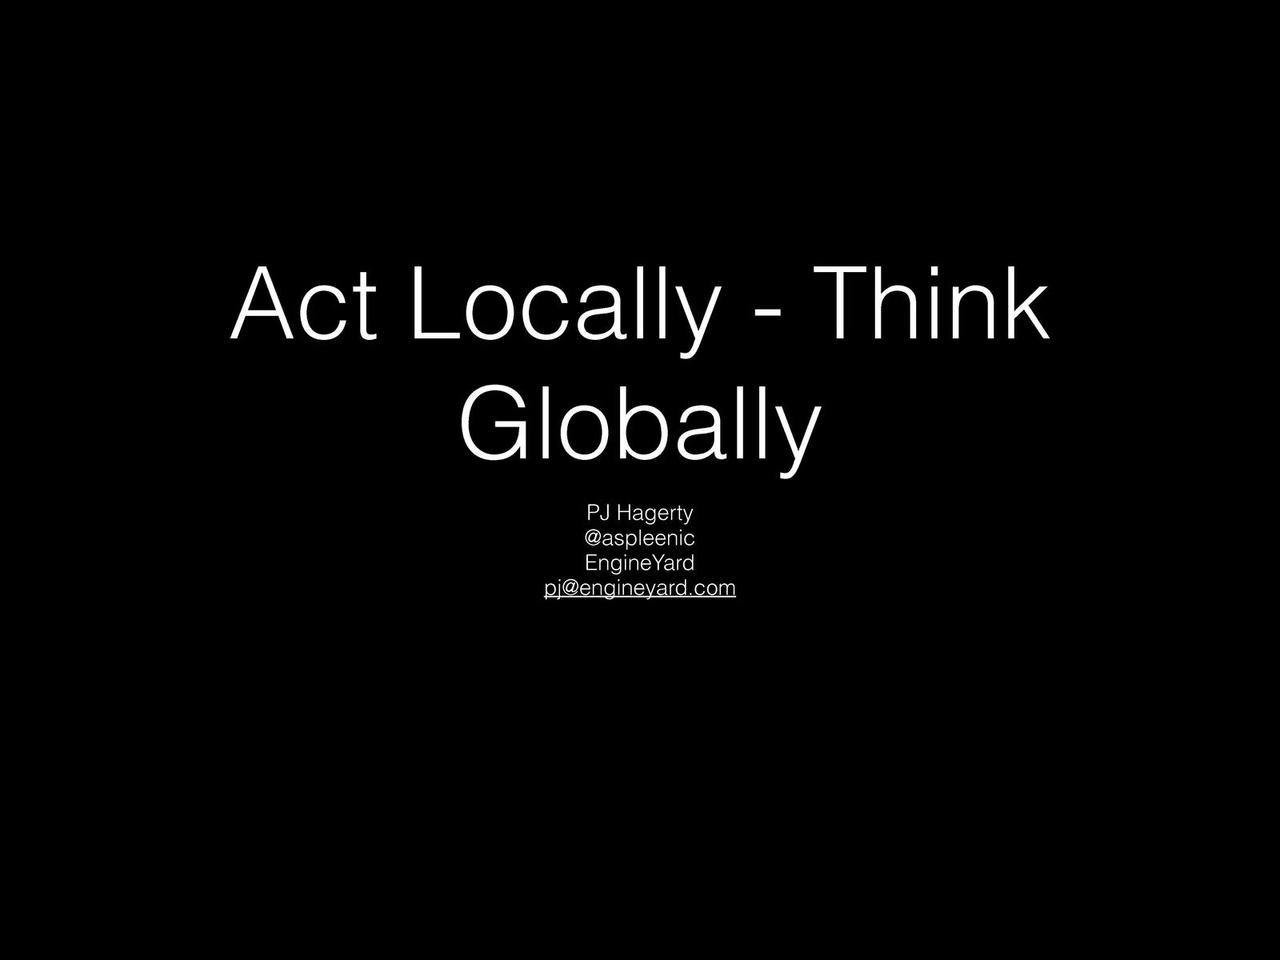 Act Locally - Think Globally